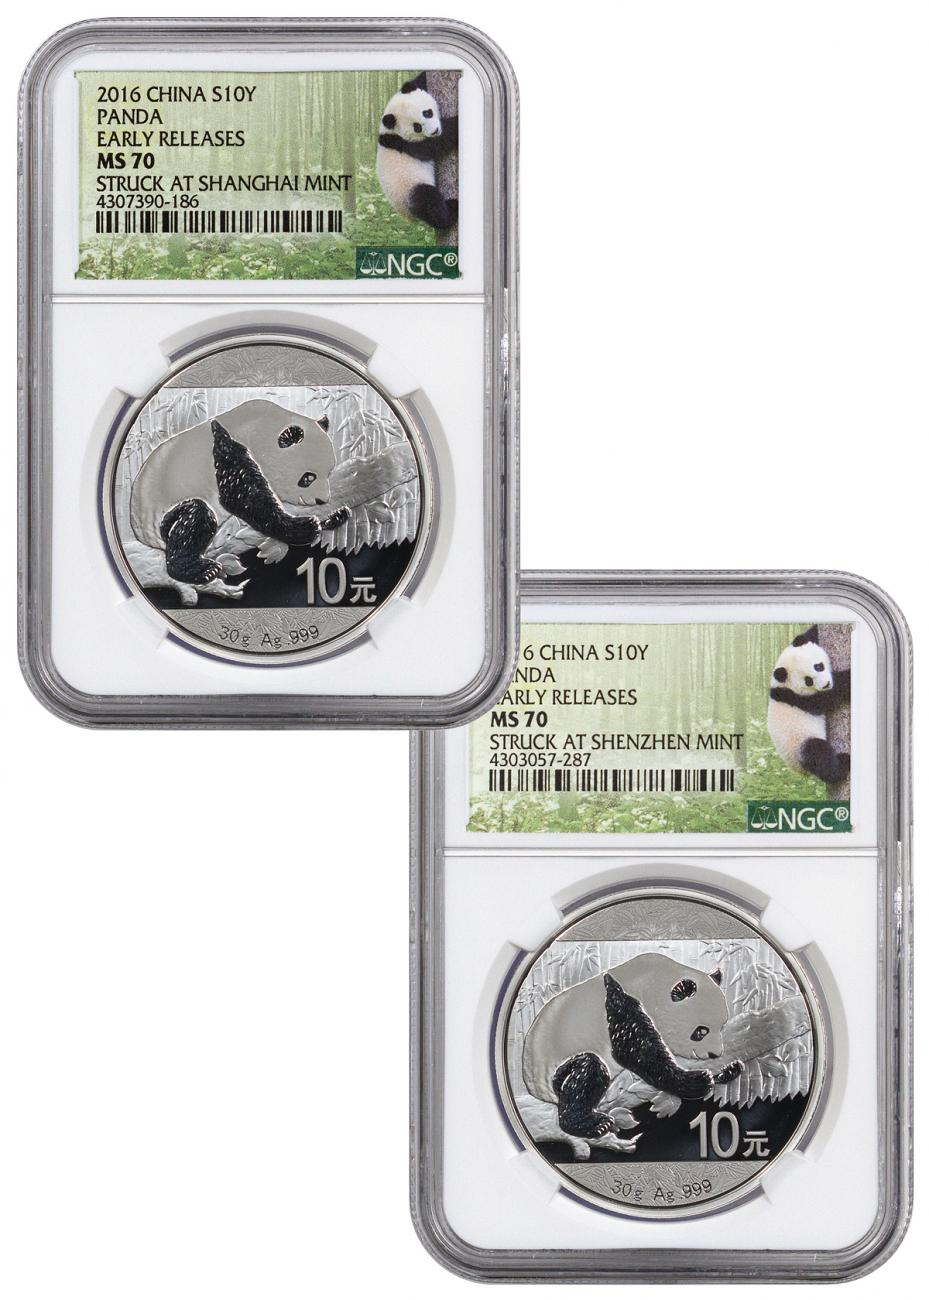 2-Coin Set of 2016 China 30 g Silver Panda - Struck At Shenzhen and Shanghai Mints NGC MS70 ER (Panda Label)